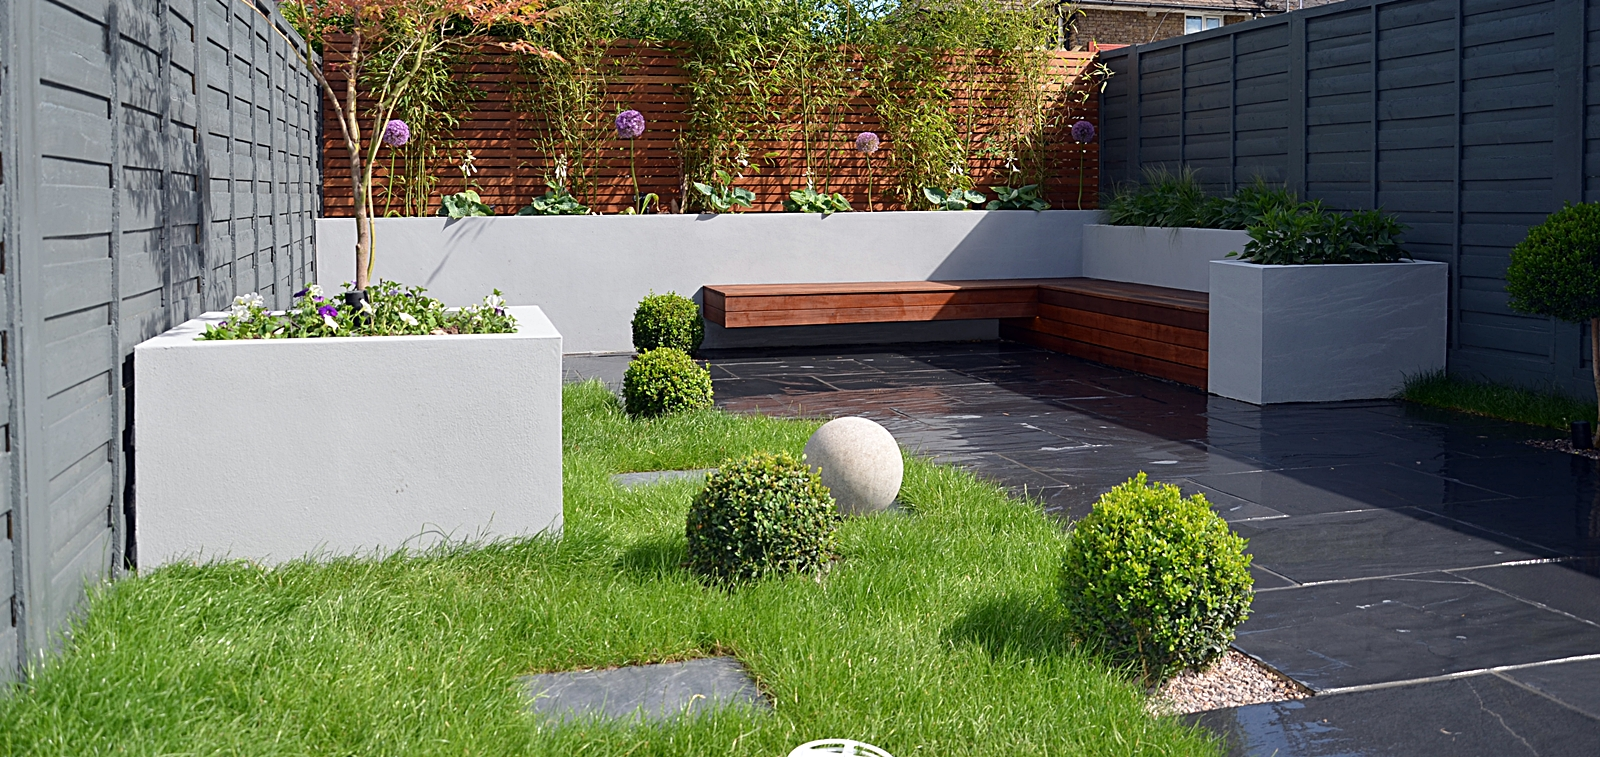 rendered block walls slate paving designer lawn, modern planting london garden design